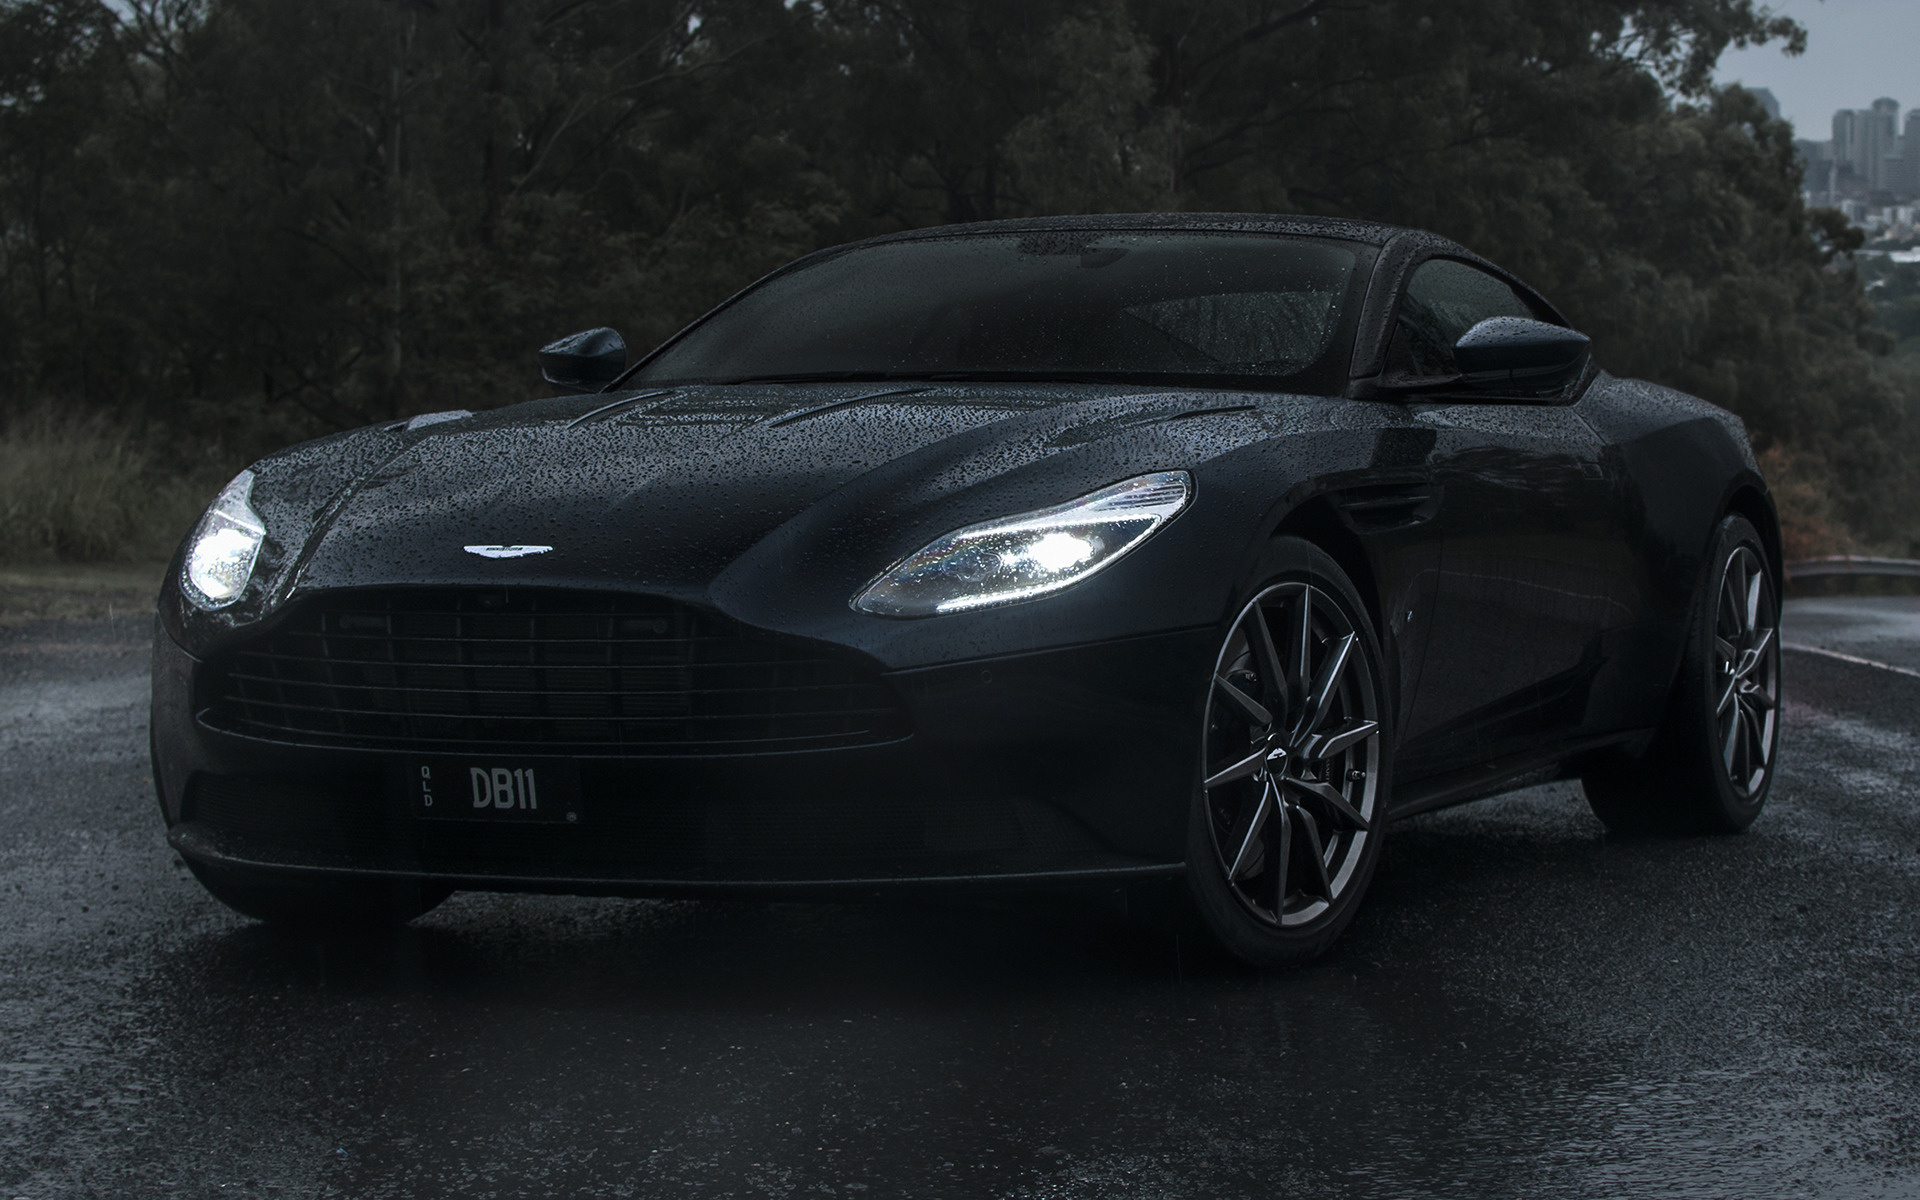 Aston martin db11 2017 au wallpapers and hd images car pixel wide 85 aston martin publicscrutiny Image collections